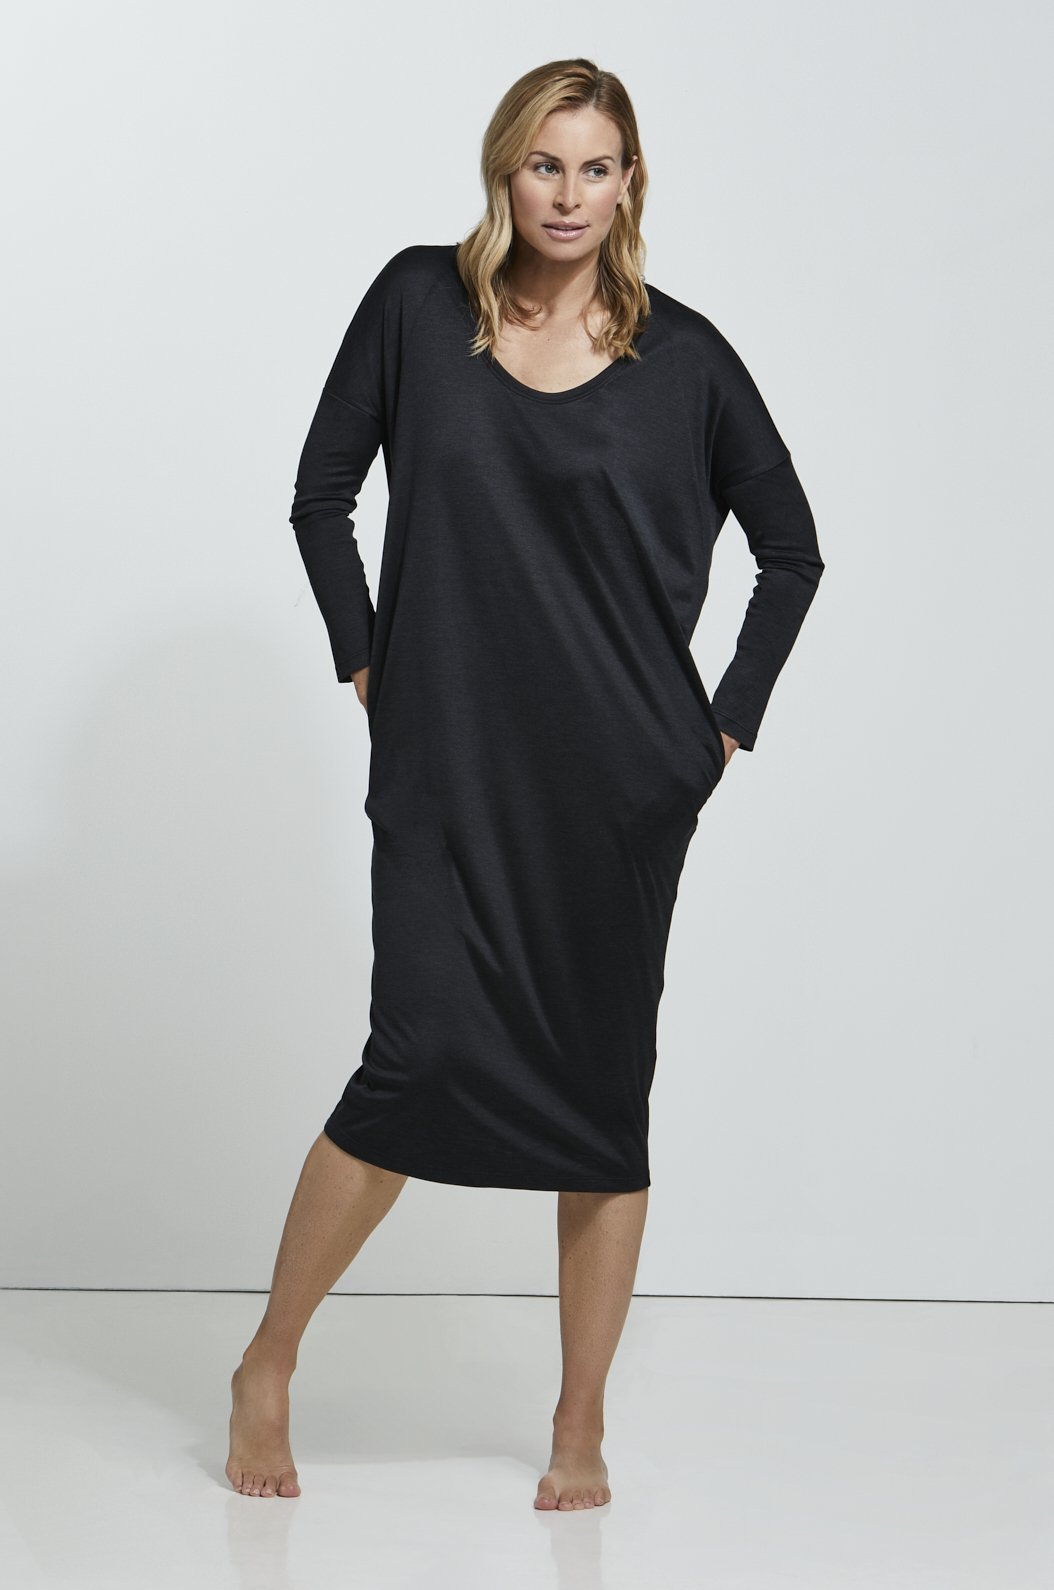 ROYL NYC | Luxury loungewear - DOUBLE LAYER STRETCH SILK COCOON DRESS | ROYL